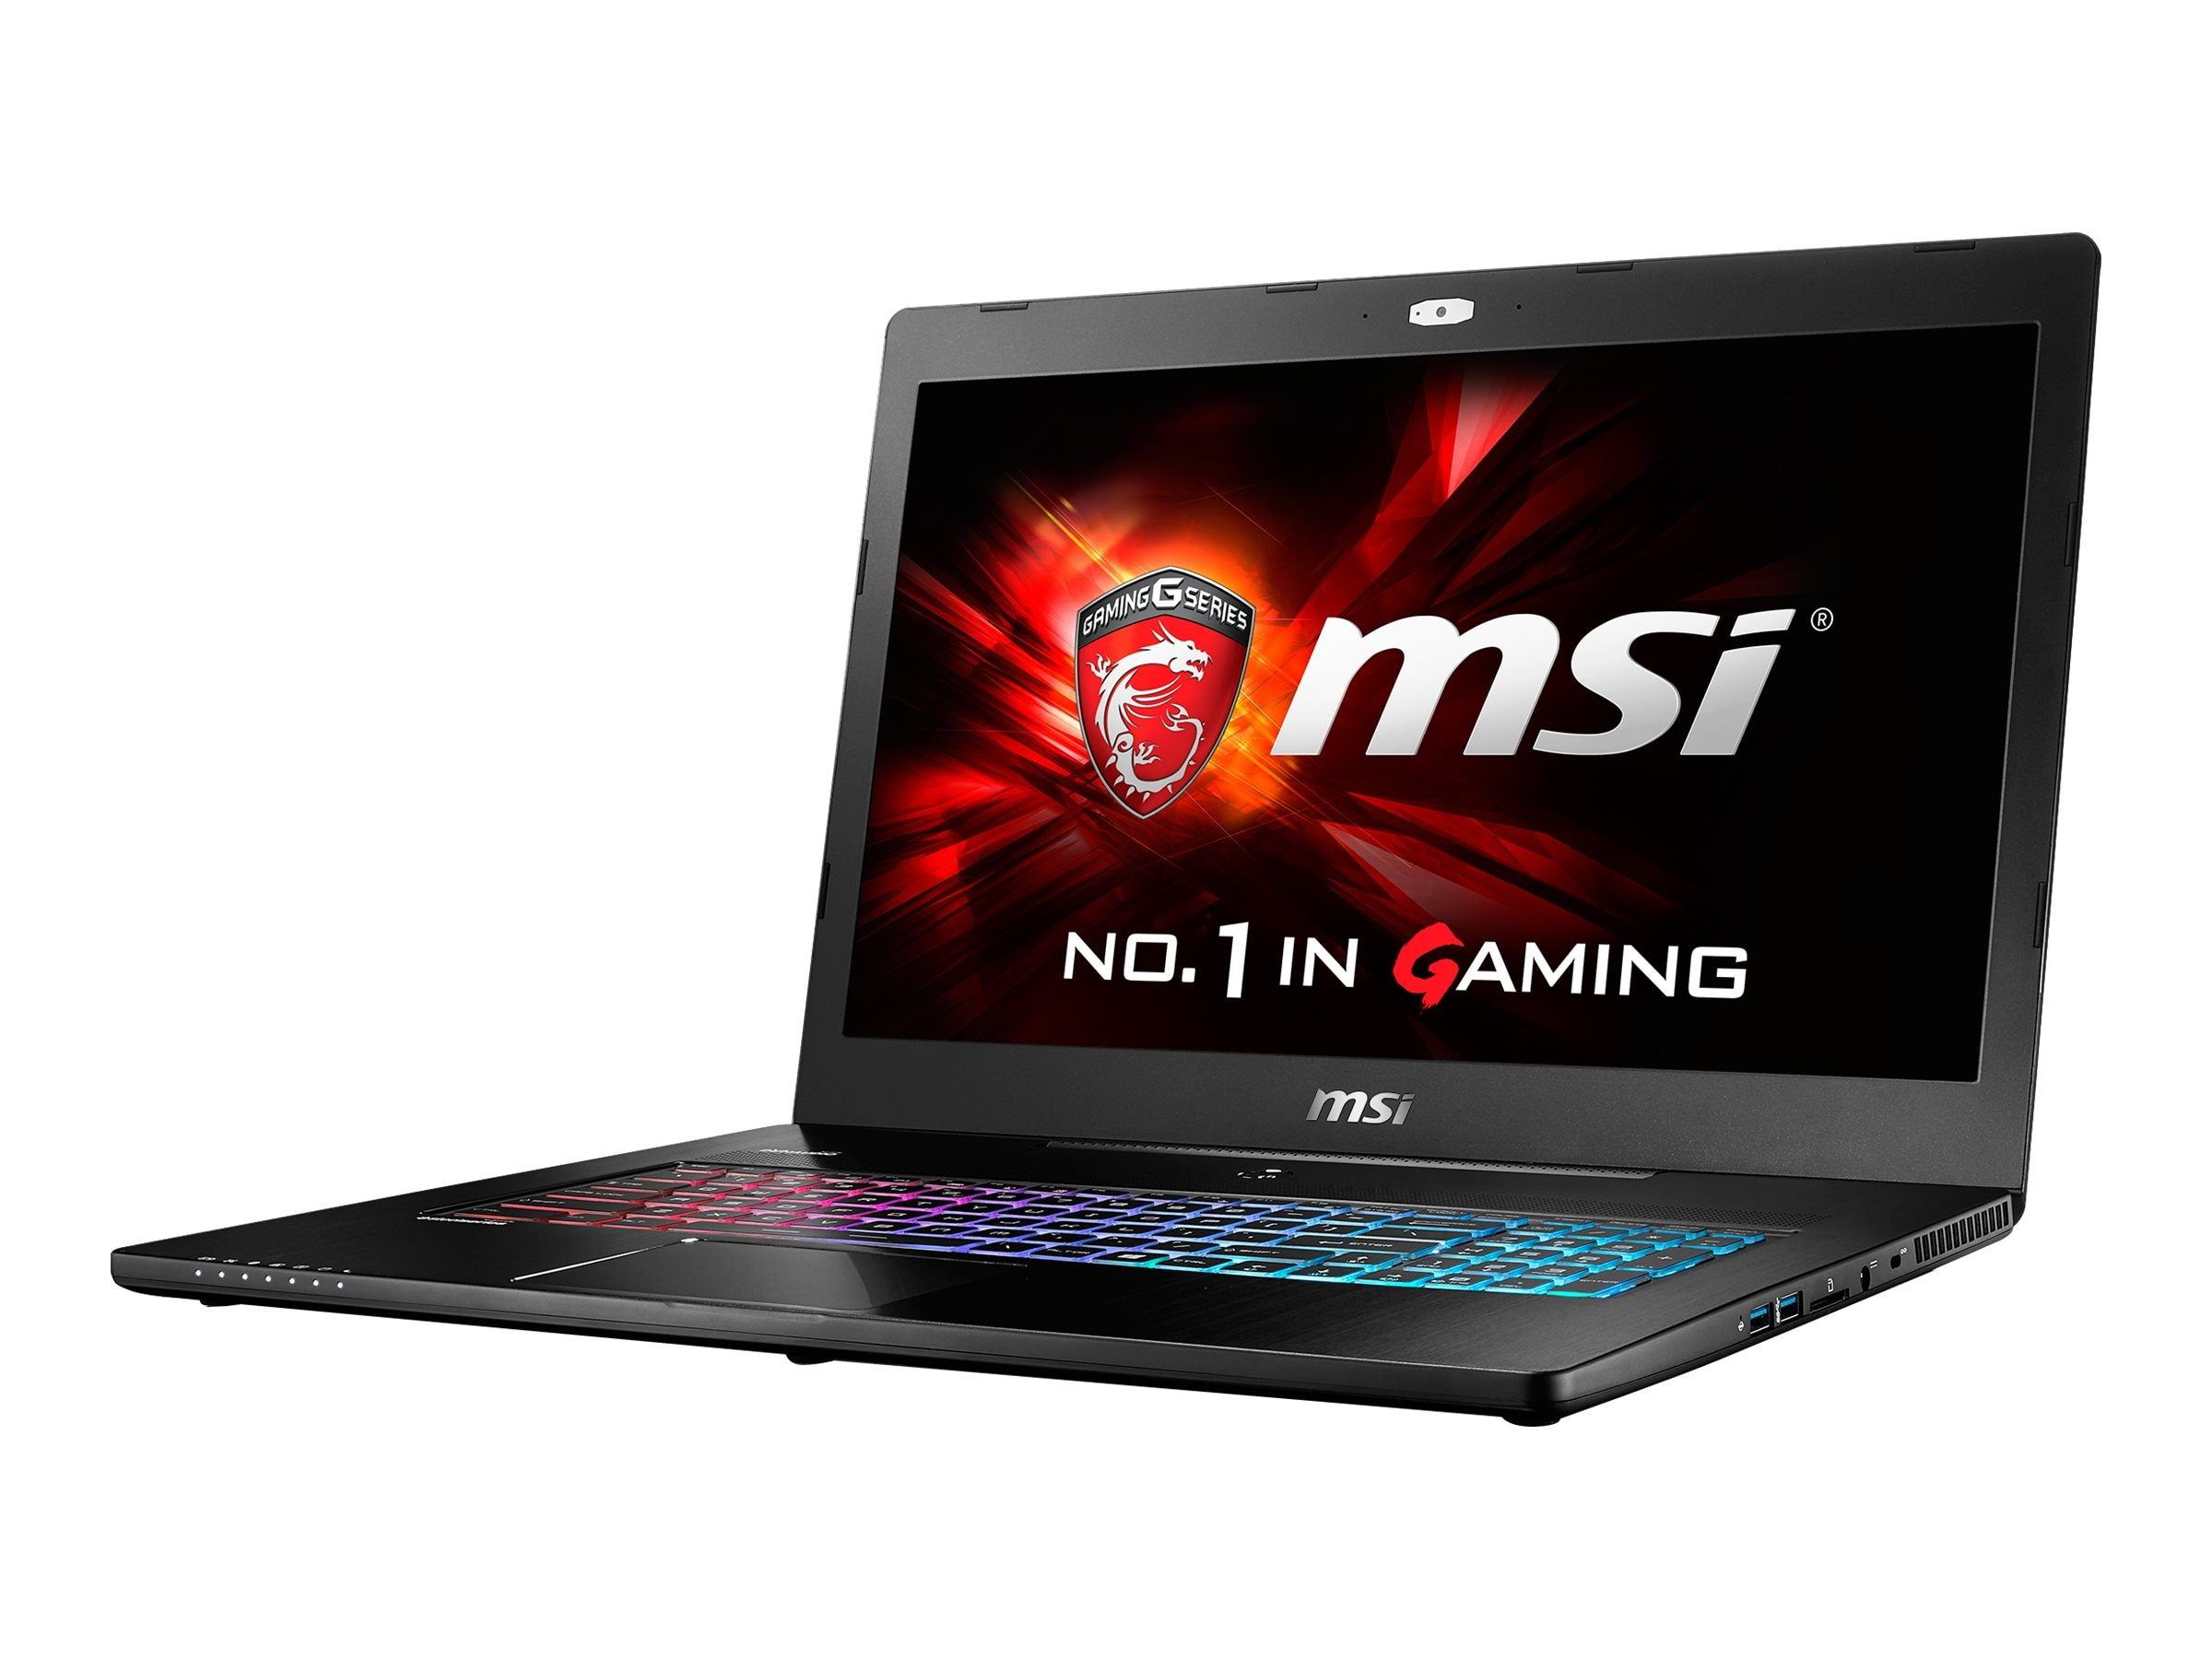 MSI GS72 Stealth Pro 4K-202 Core i7-6700 16GB 256GB SSD GTX 970M, GS72 STEALTH PRO 4K-202, 31391614, Notebooks